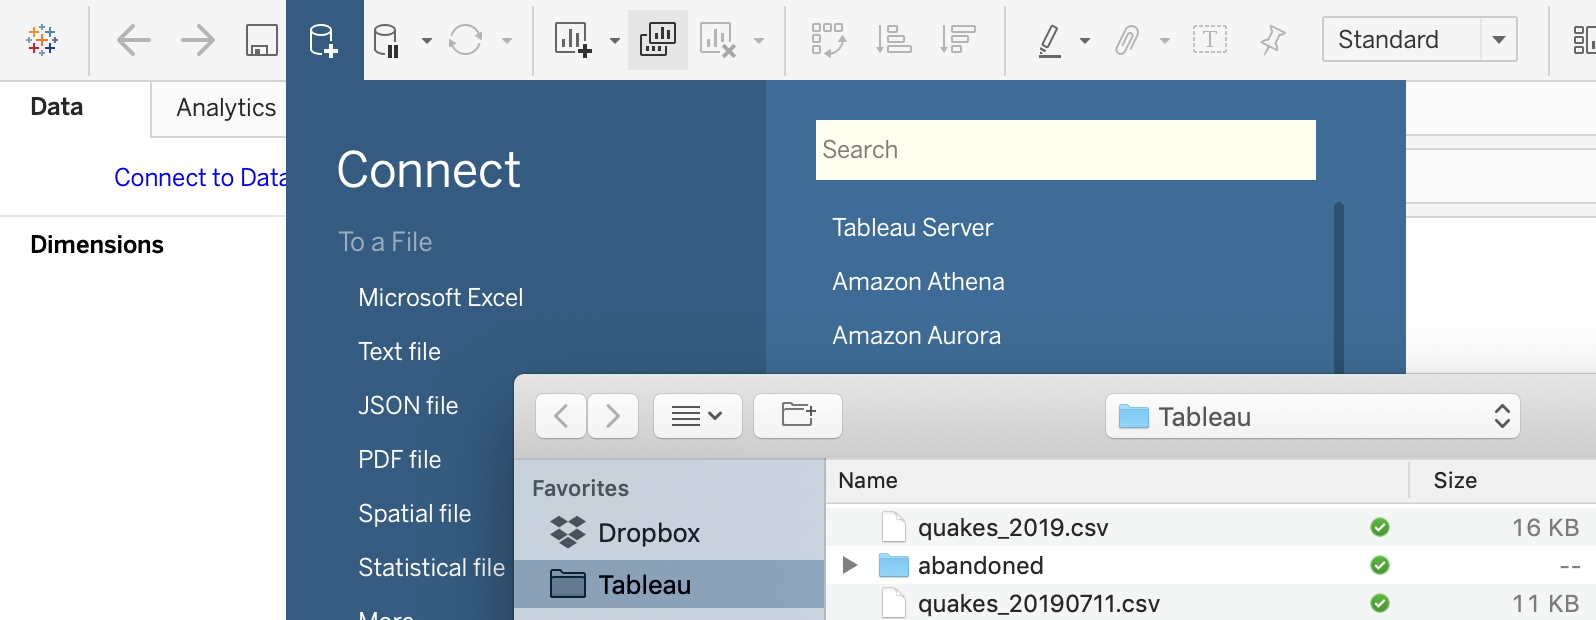 Connect data source in Tableau